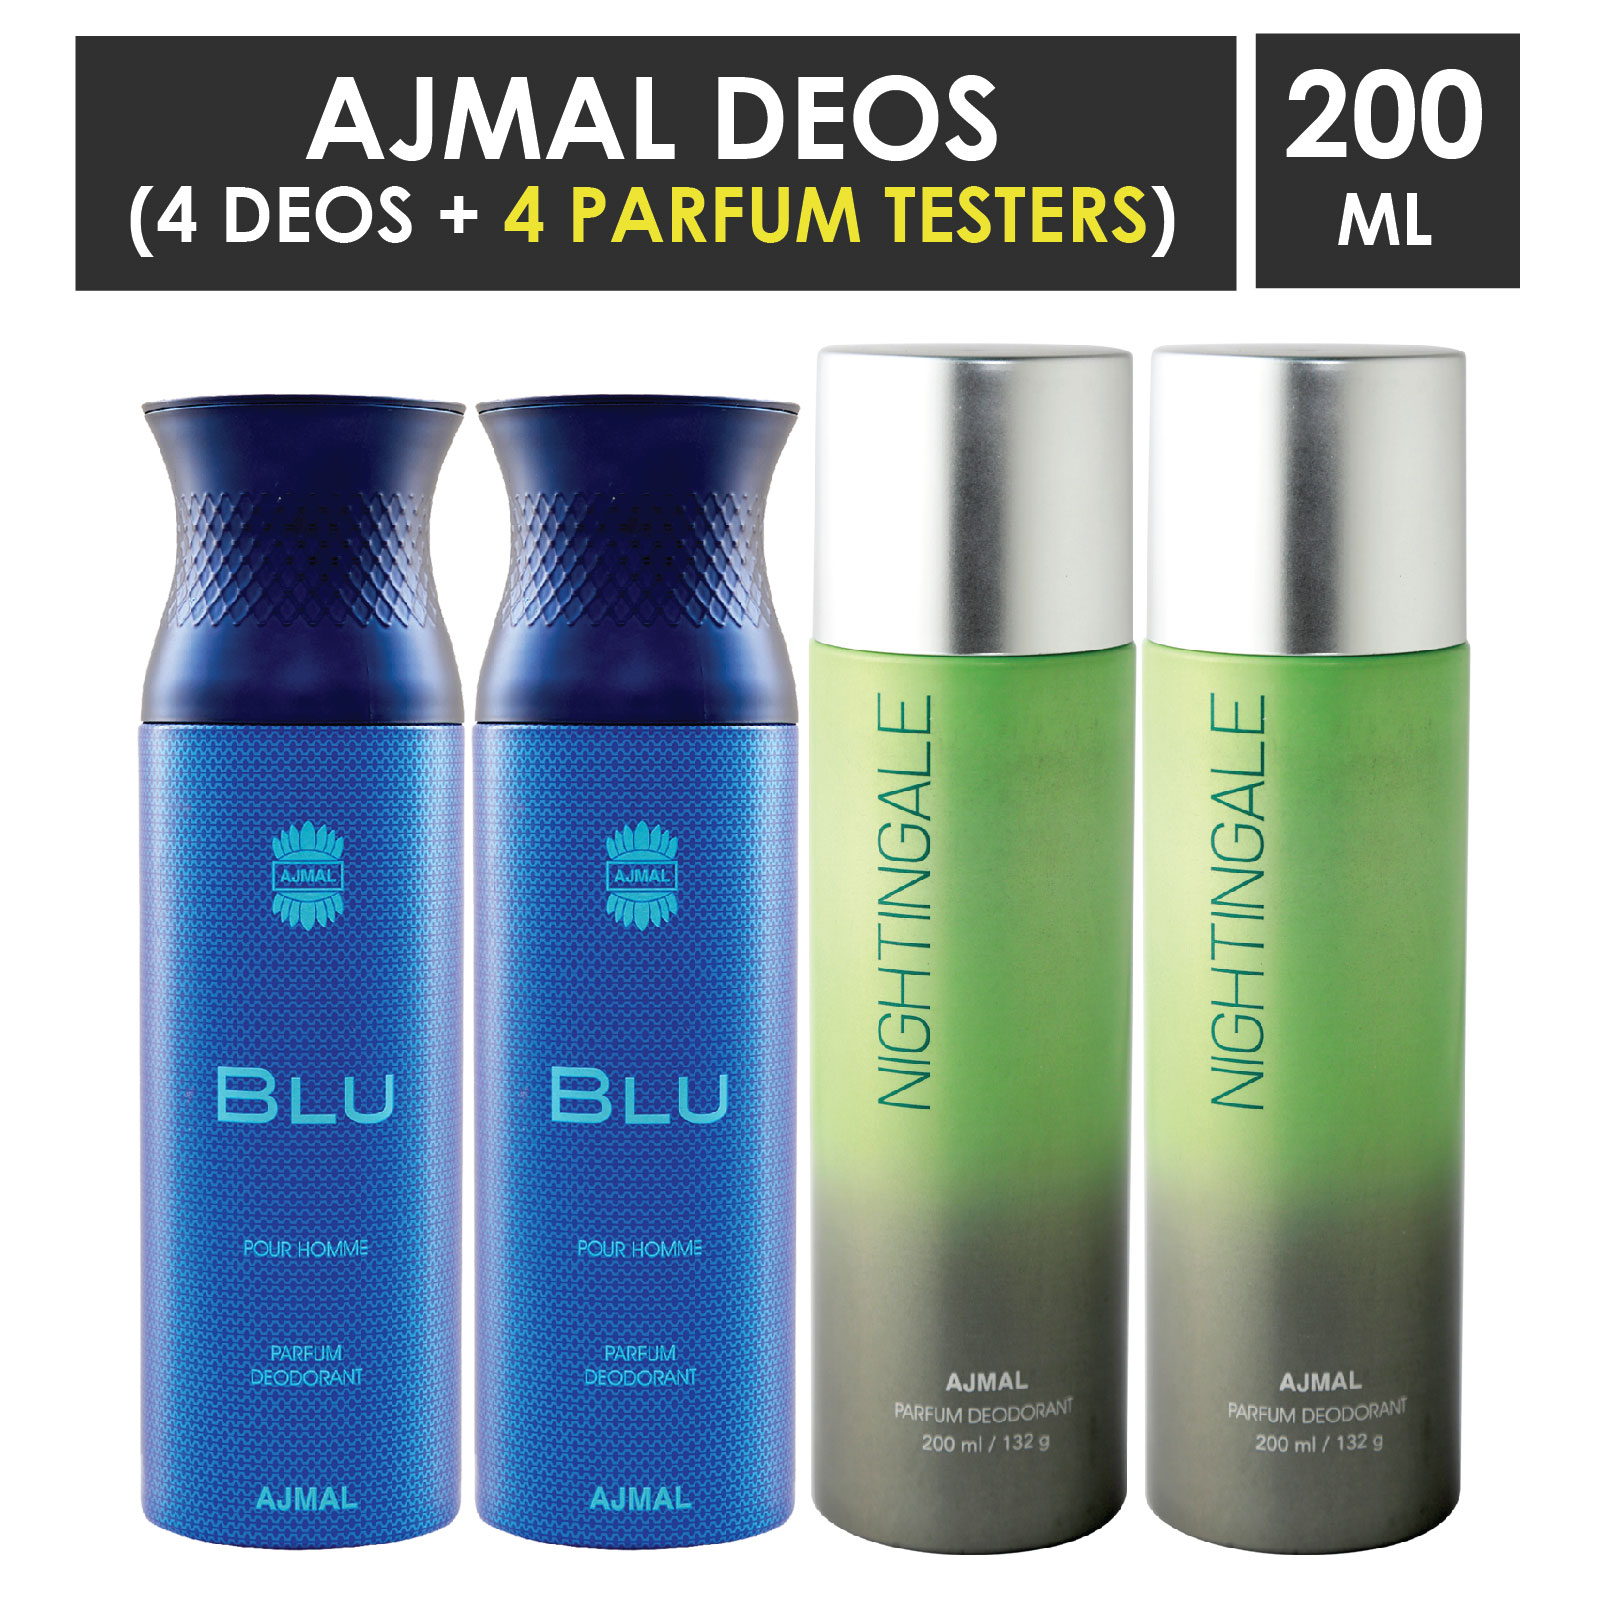 Ajmal   Ajmal 2 Blu Homme for Men and 2 Nightingale for Men & Women High Quality Deodorants each 200ML Combo pack of 4 (Total 800ML) + 4 Parfum Testers